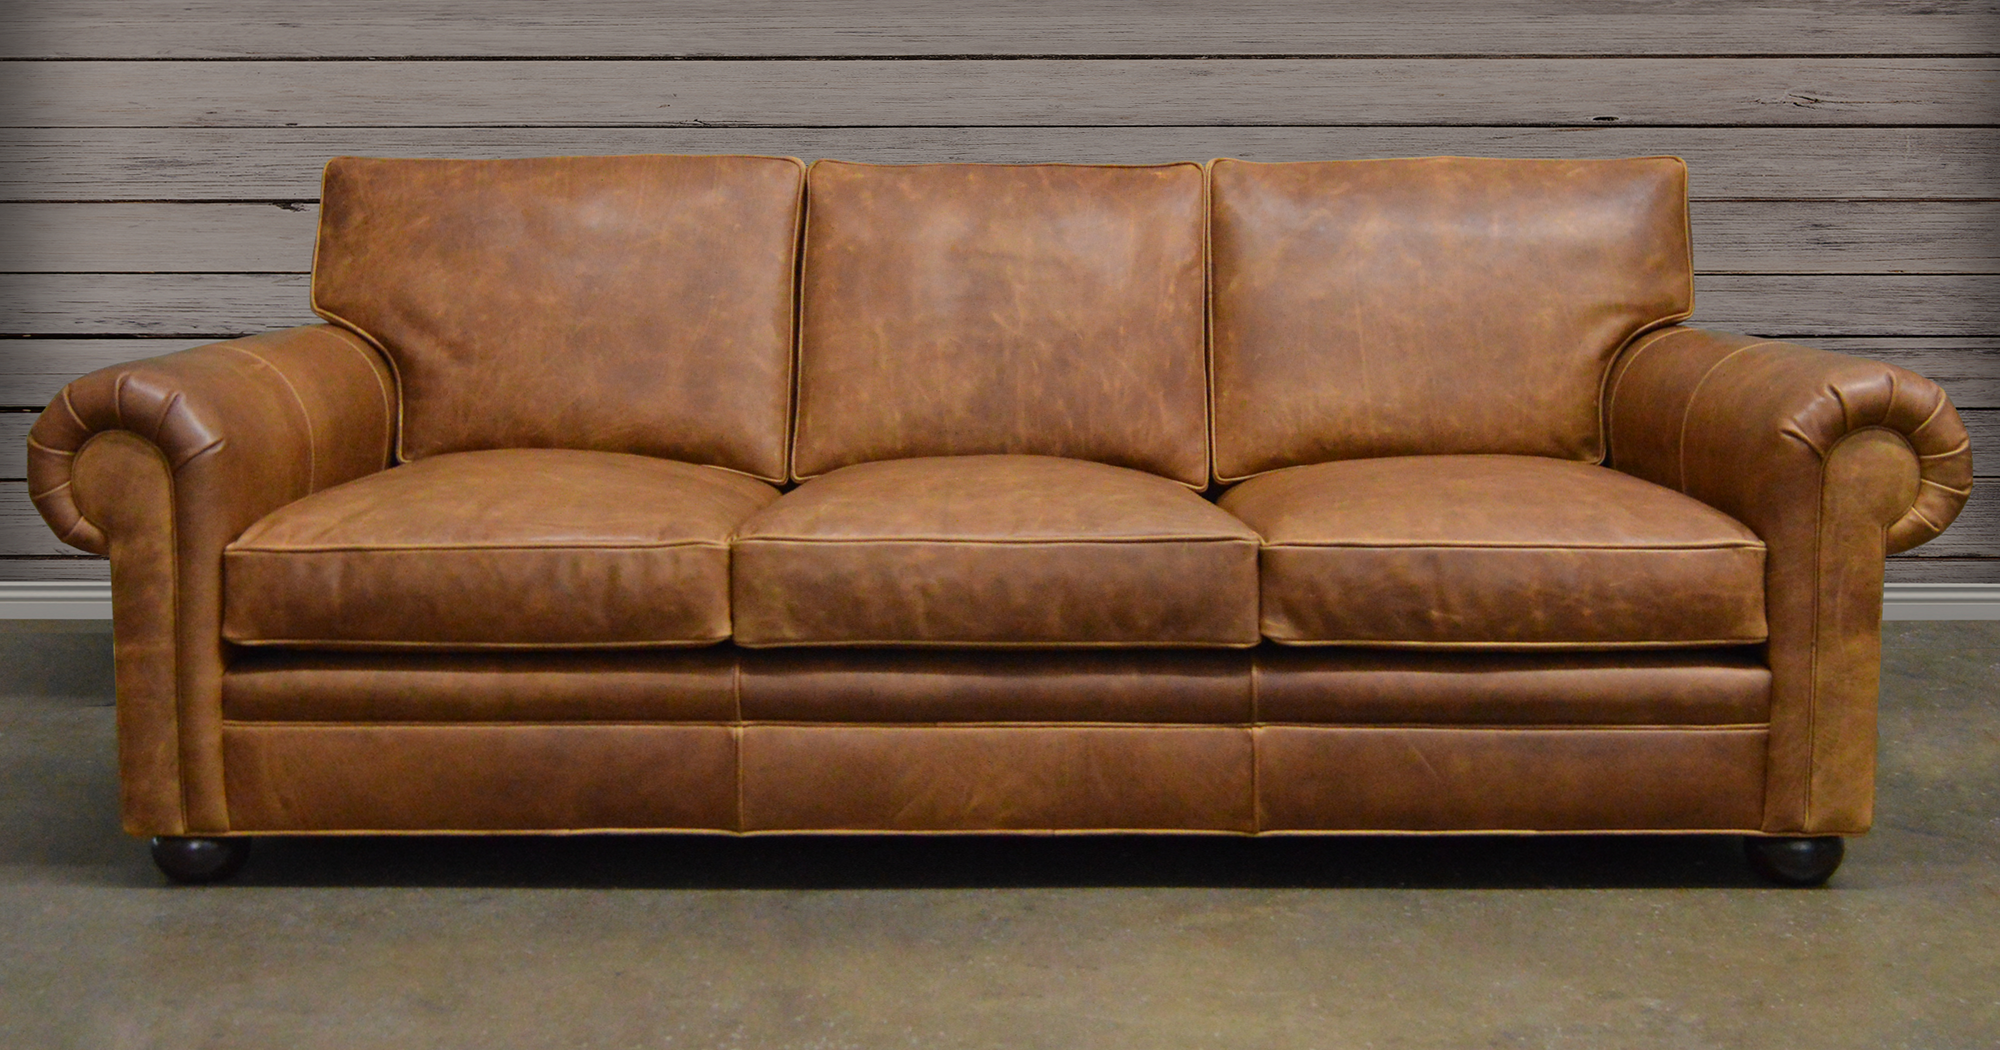 Langston Leather Sofa :: Leather Sofas :: LeatherGroups.com